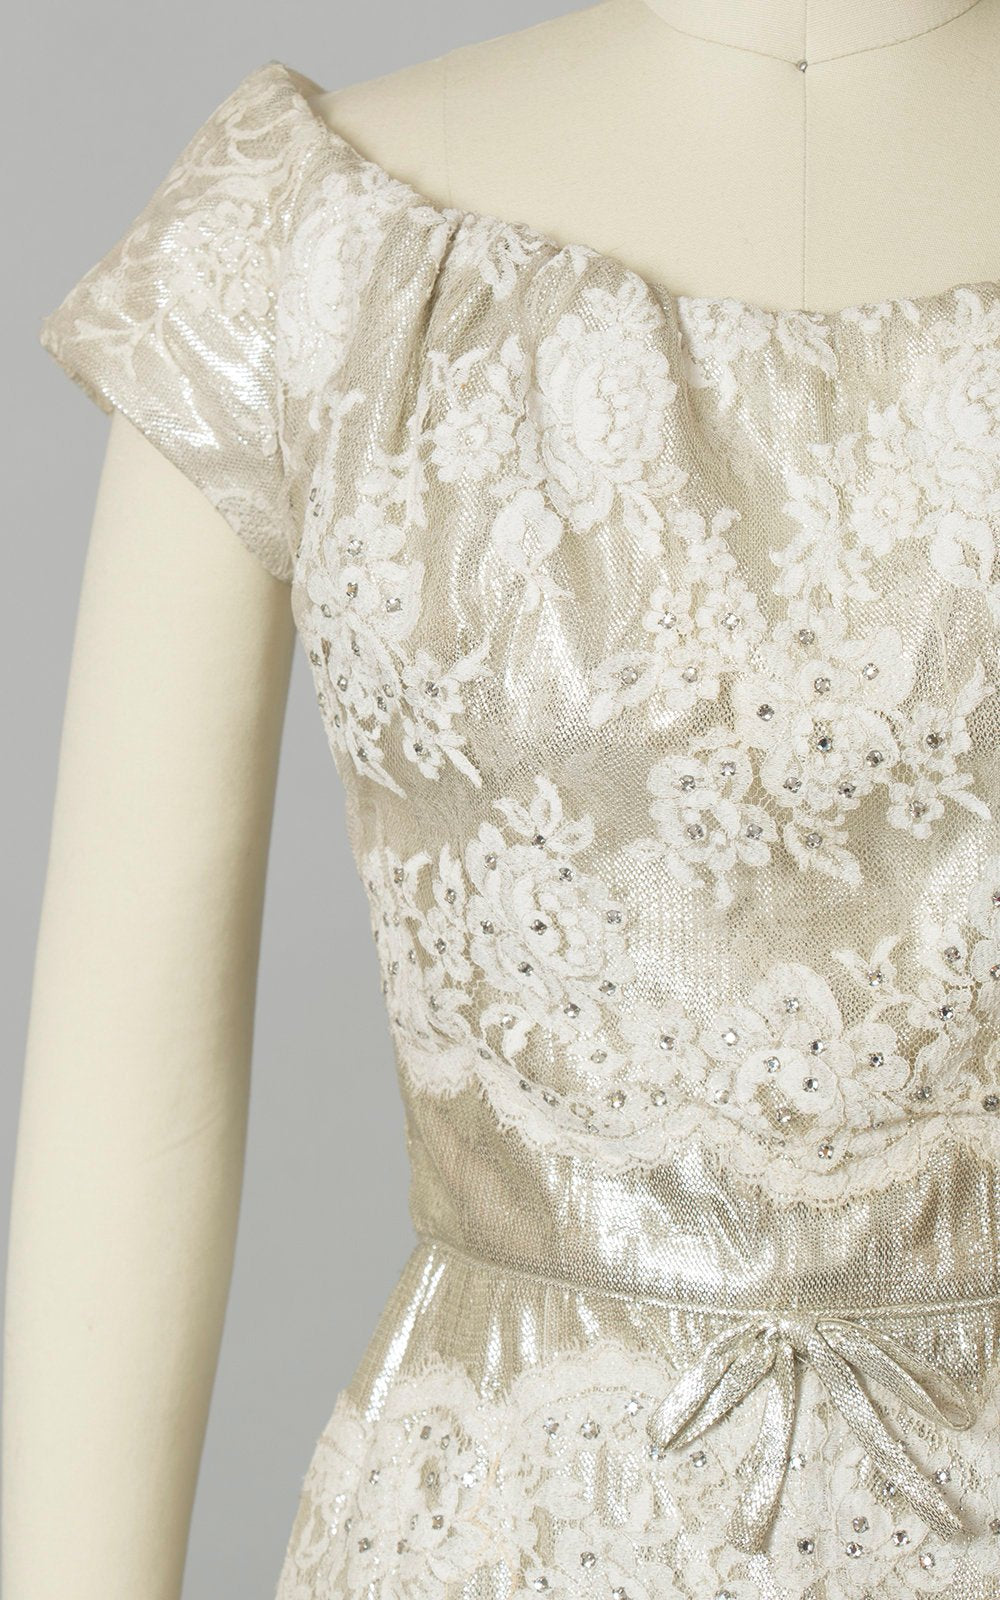 Vintage 1950s Dress | 50s PEGGY HUNT Cocktail Dress White Lace Metallic Silver Lamé Rhinestones Wiggle Party Wedding Dress (x-small)